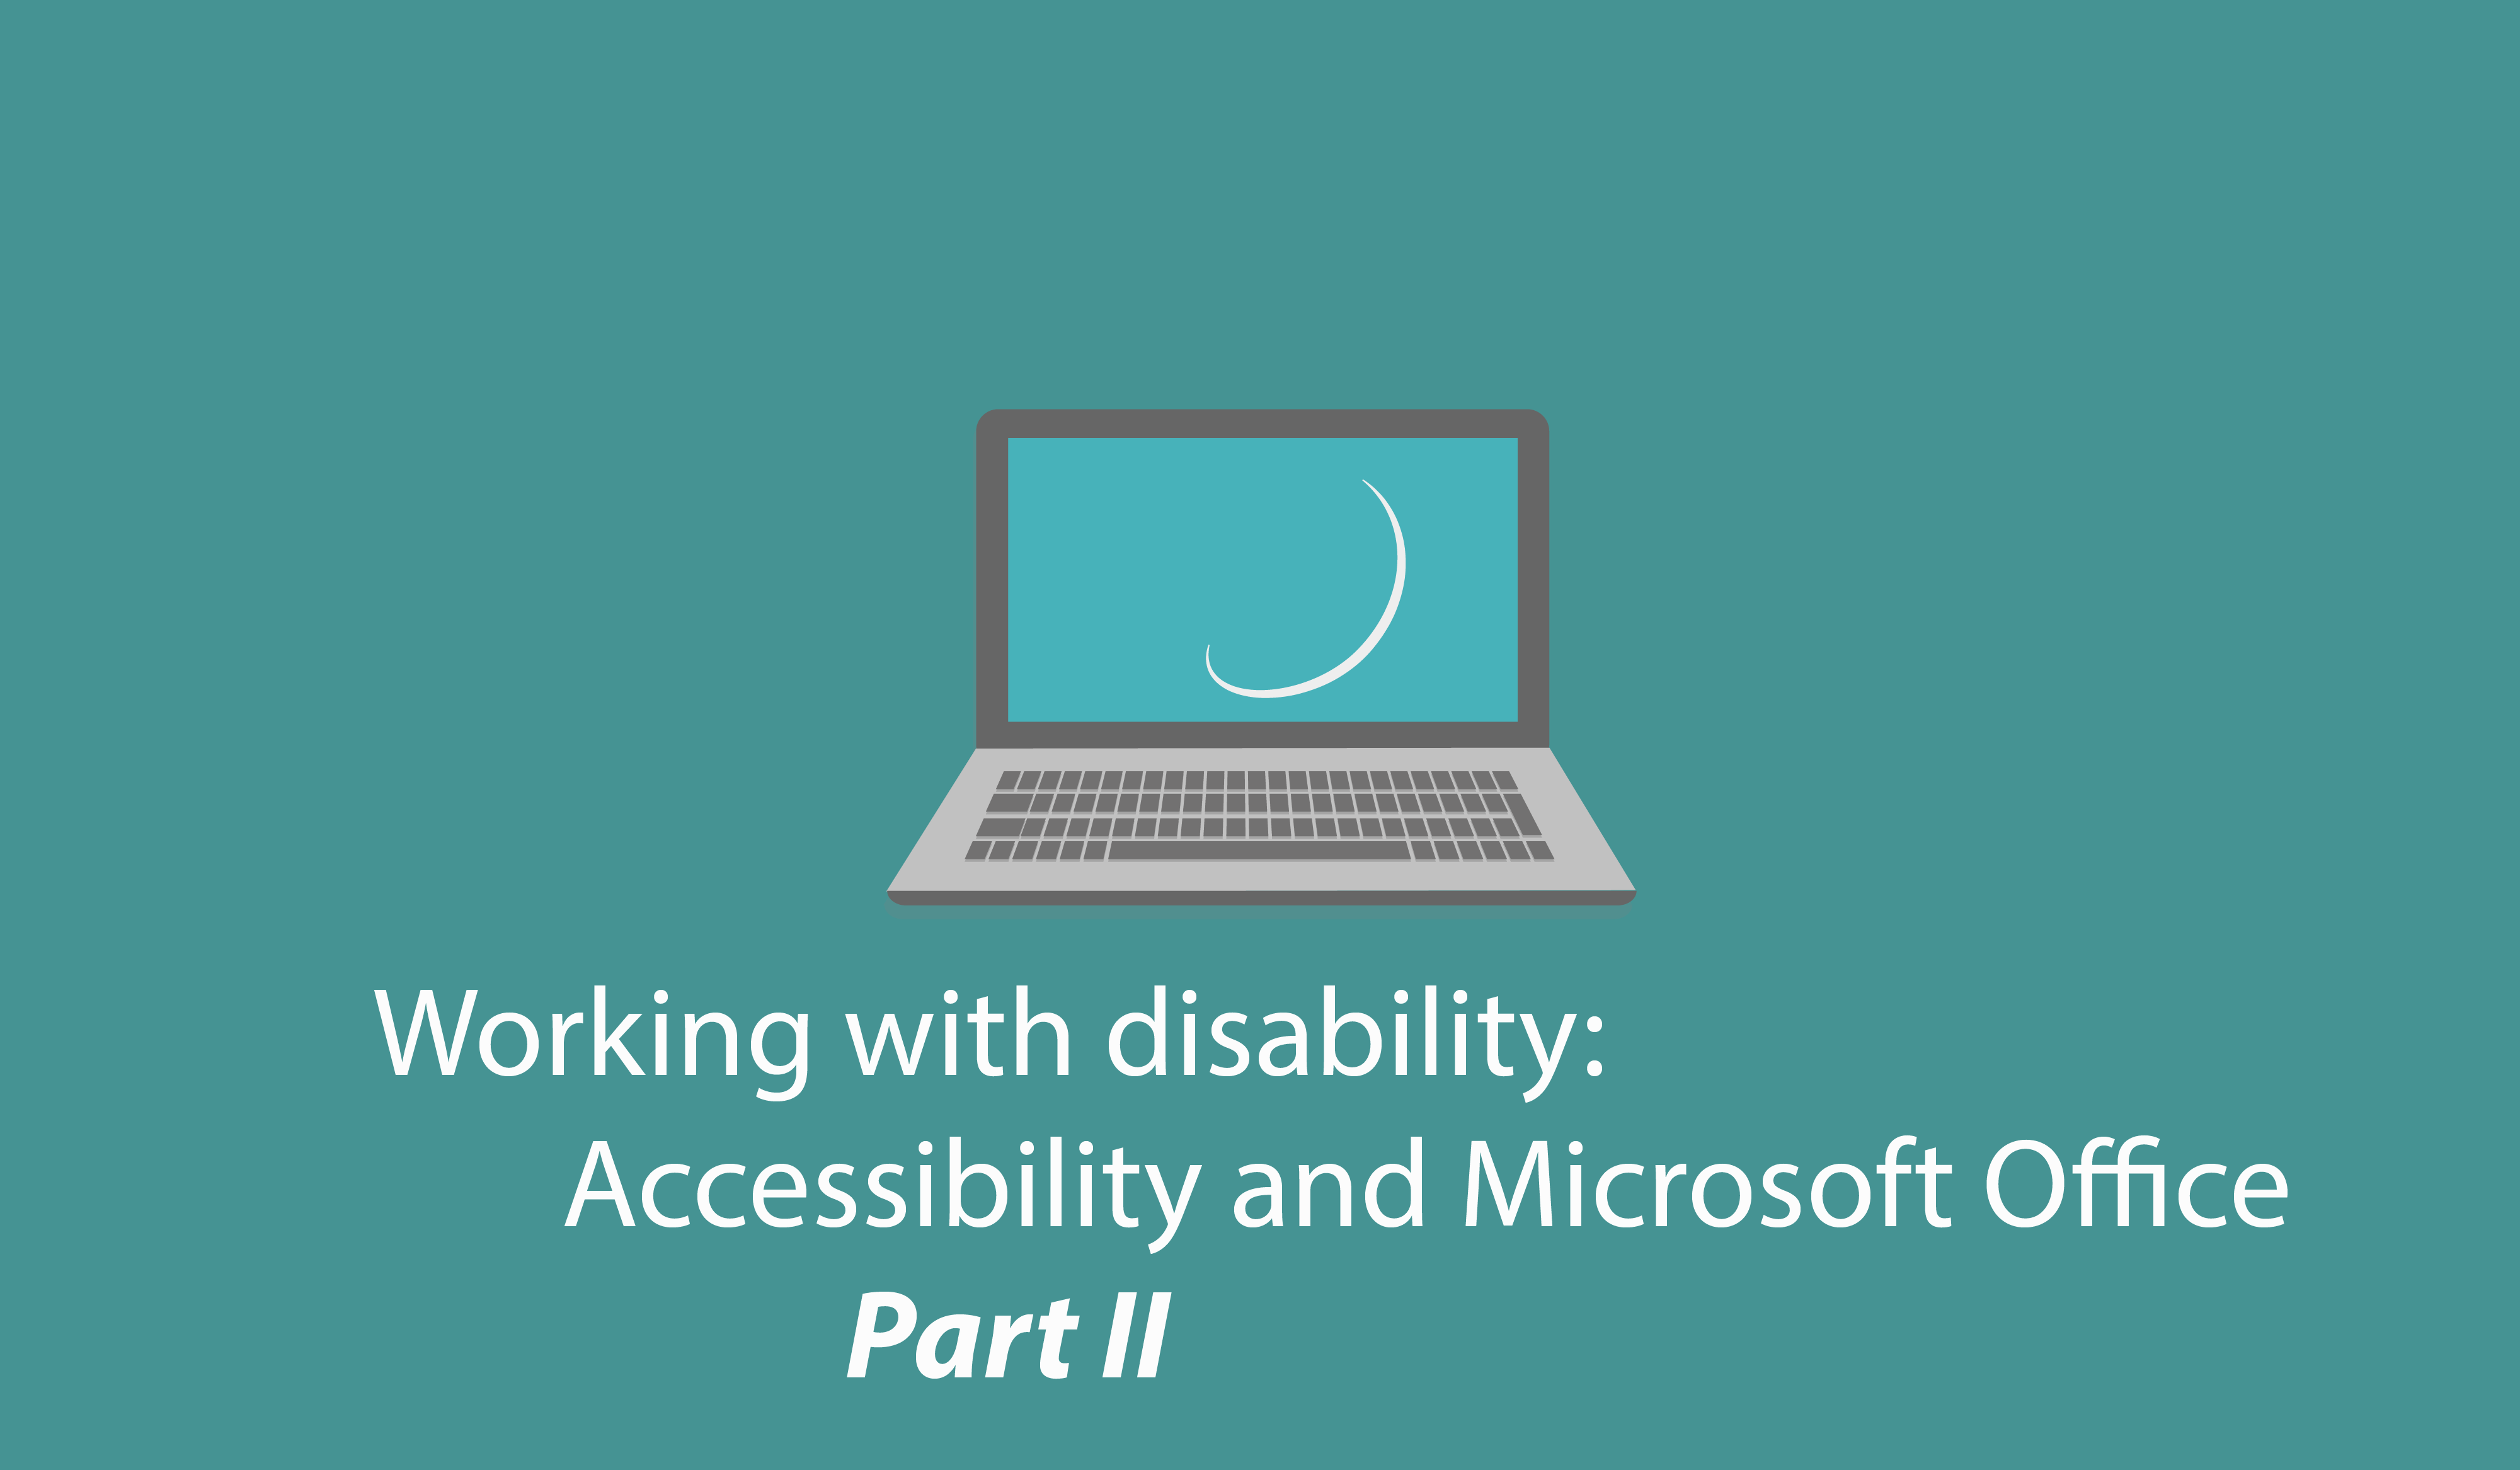 Working with disability: Accessibility and Microsoft Office – Part II